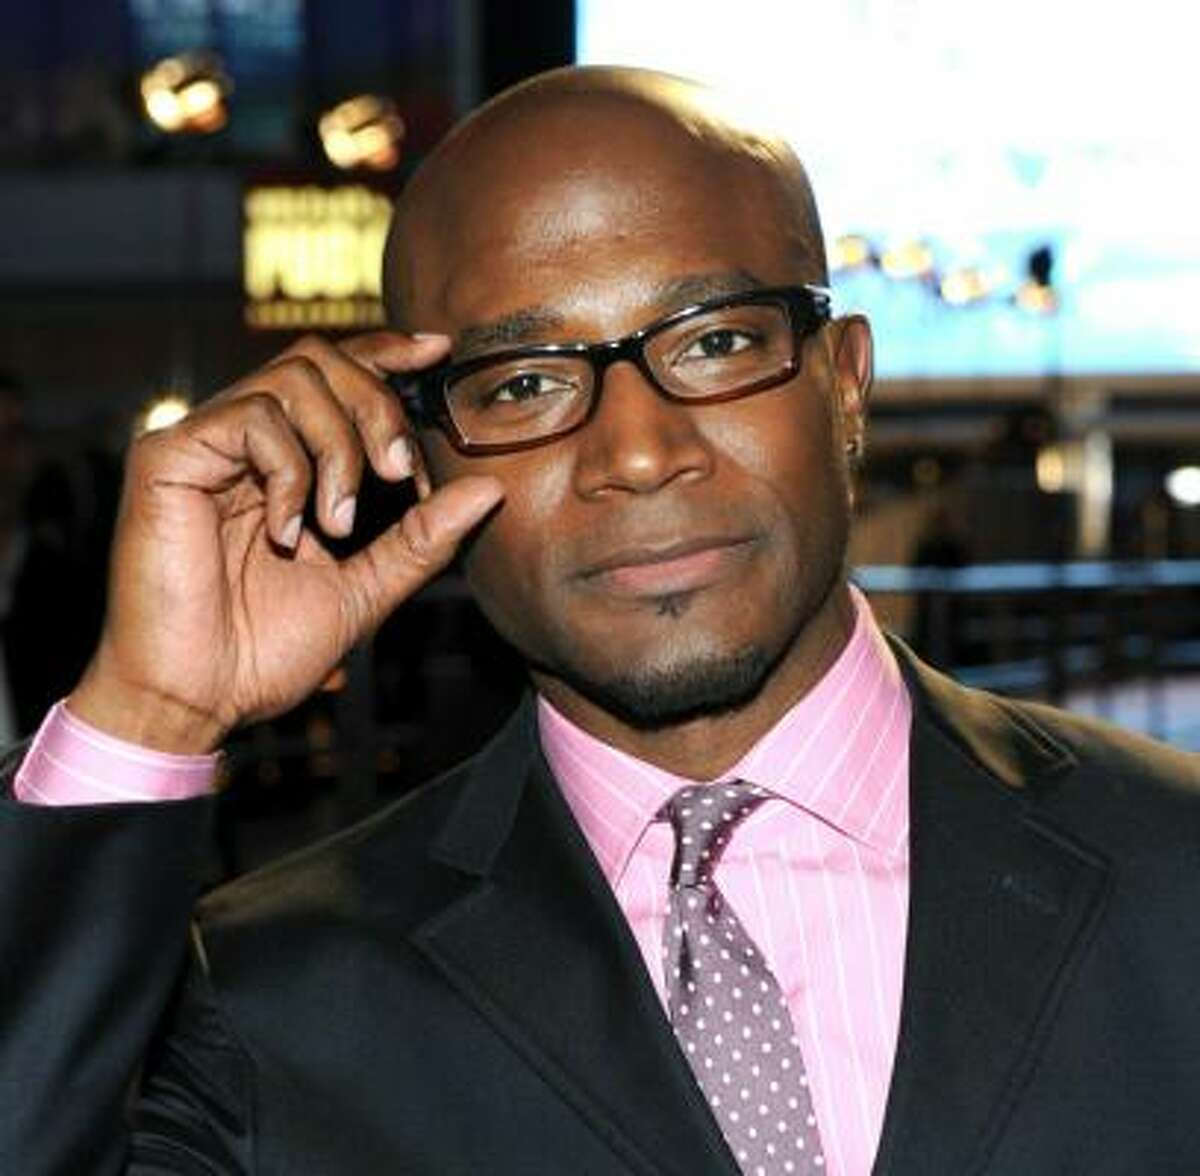 It takes finesse to pull off the pink, but Taye Diggs does it in style.